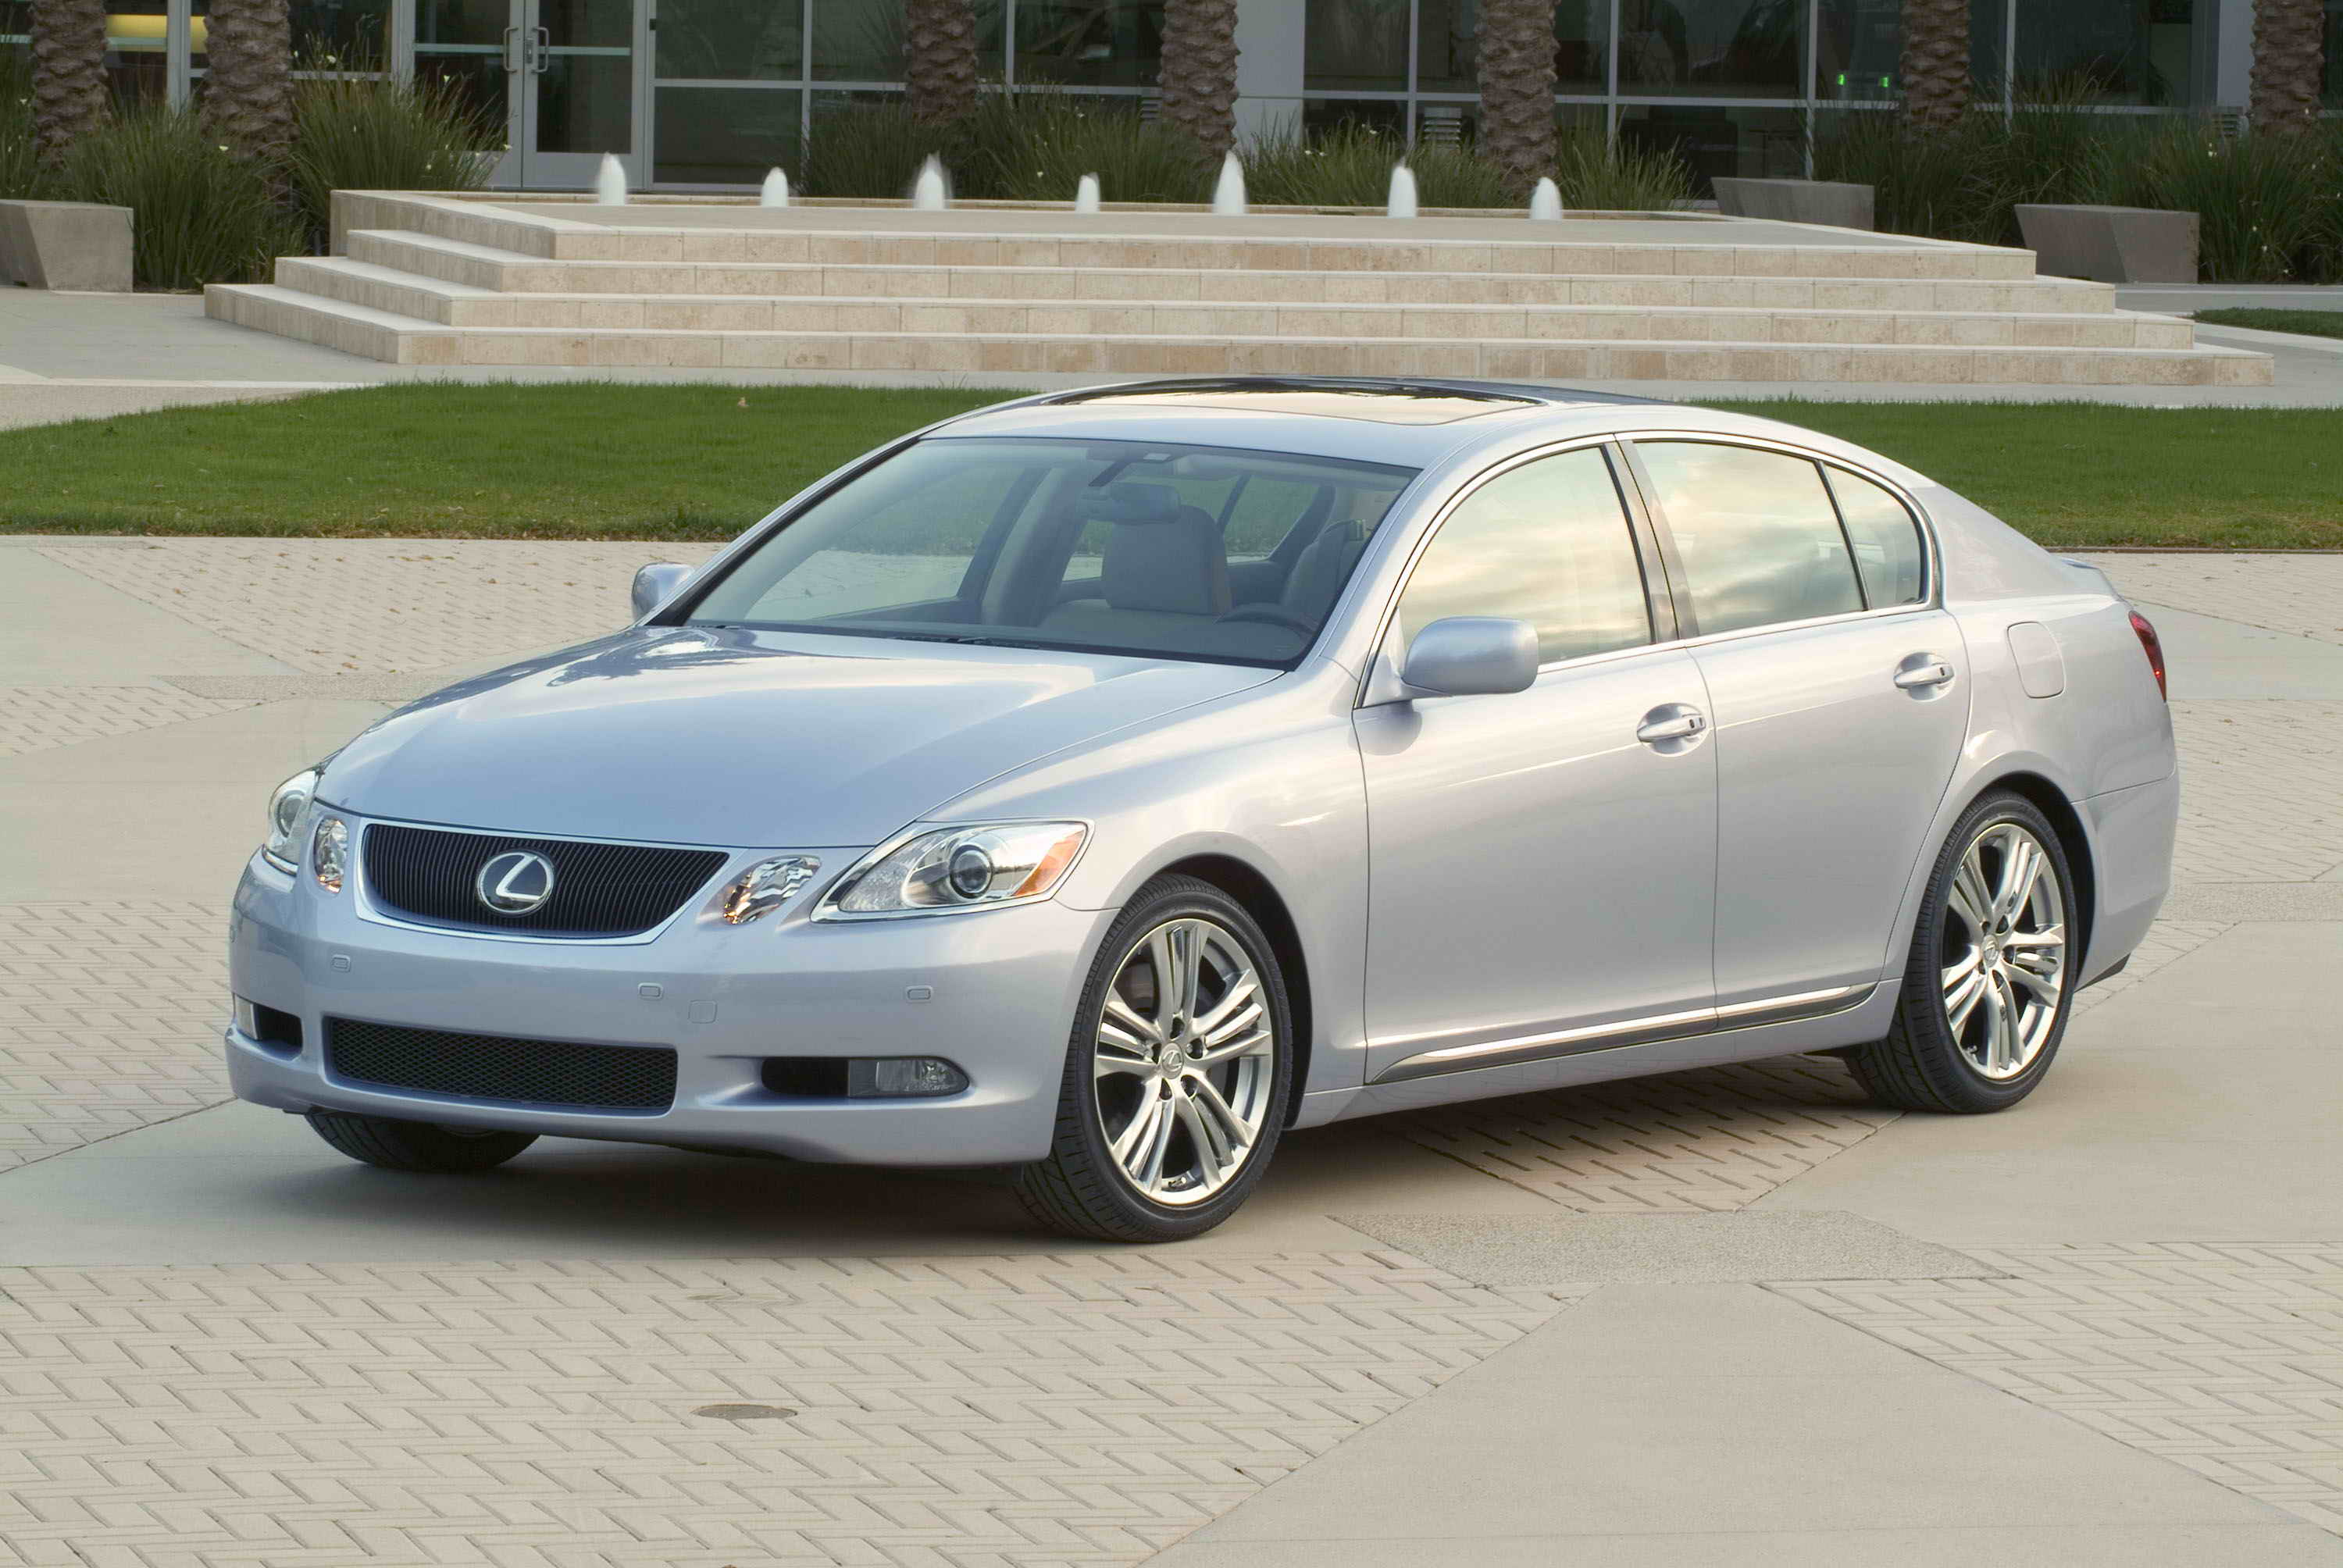 2007 lexus gs 450h full hybrid technology news top speed. Black Bedroom Furniture Sets. Home Design Ideas